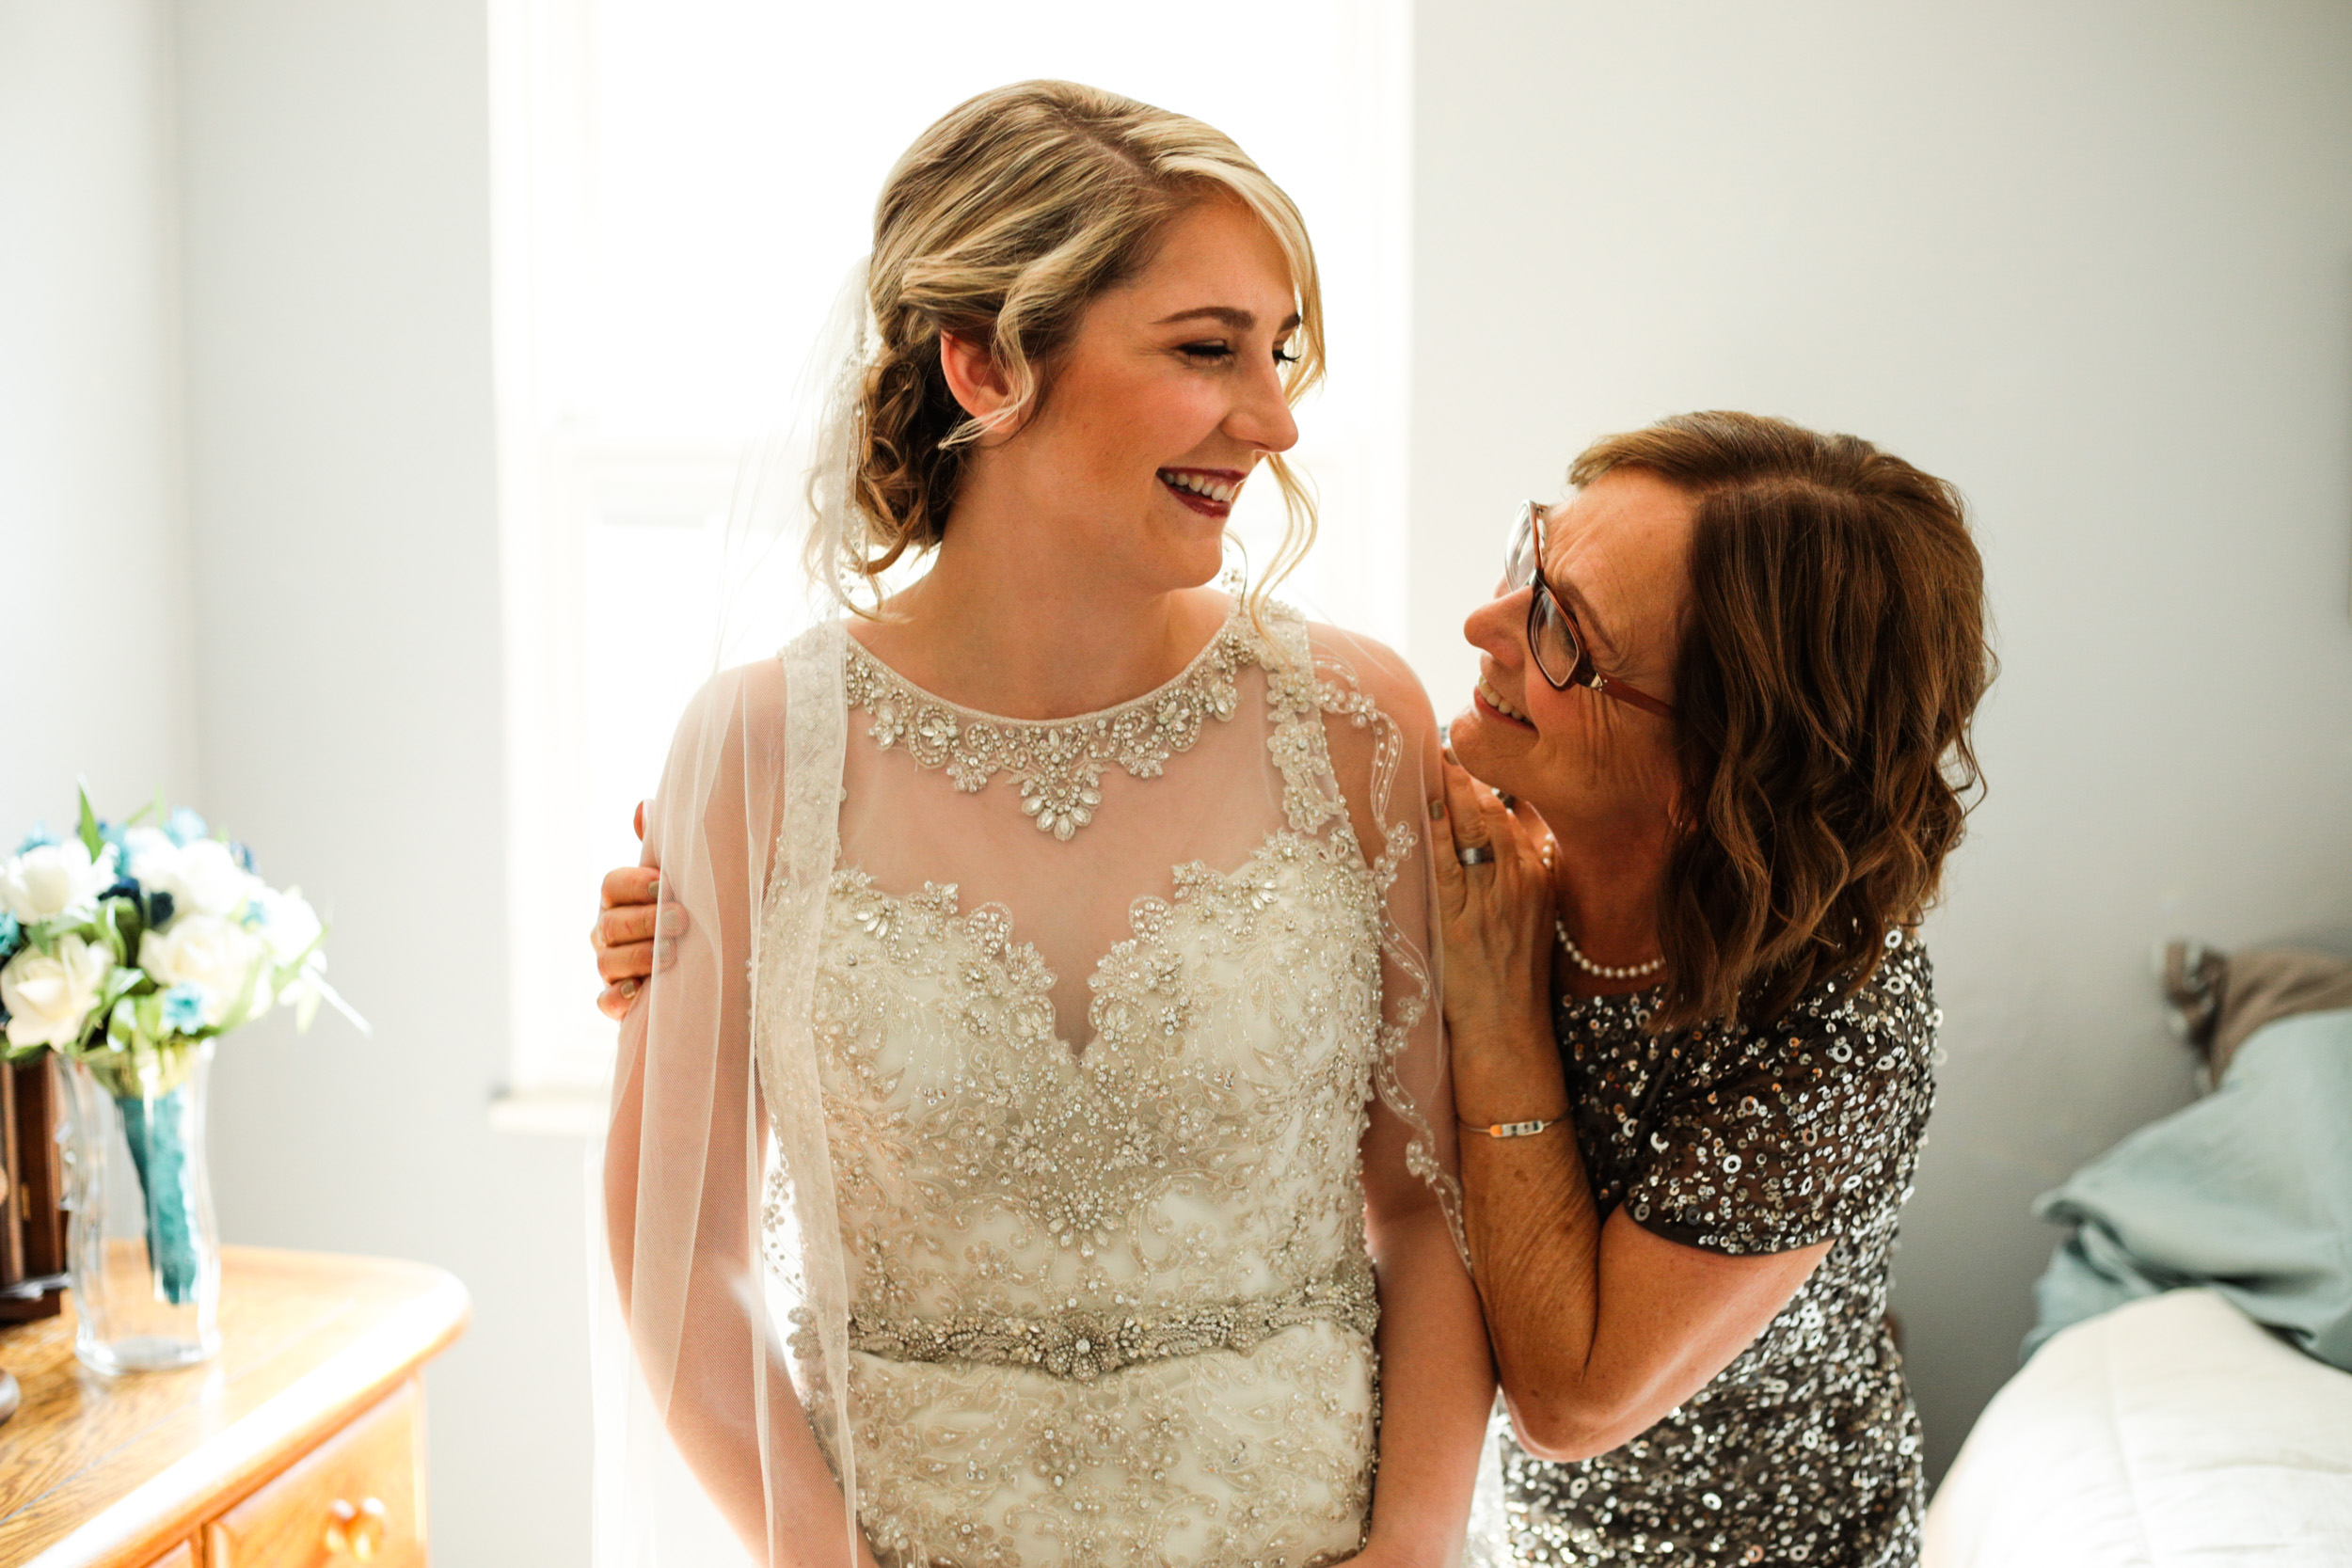 Winstanley Baptist Church Wedding and Four Points by Sheraton Reception Photos by St Louis Wedding Photographers and Videographers Oldani Photography 28.jpg